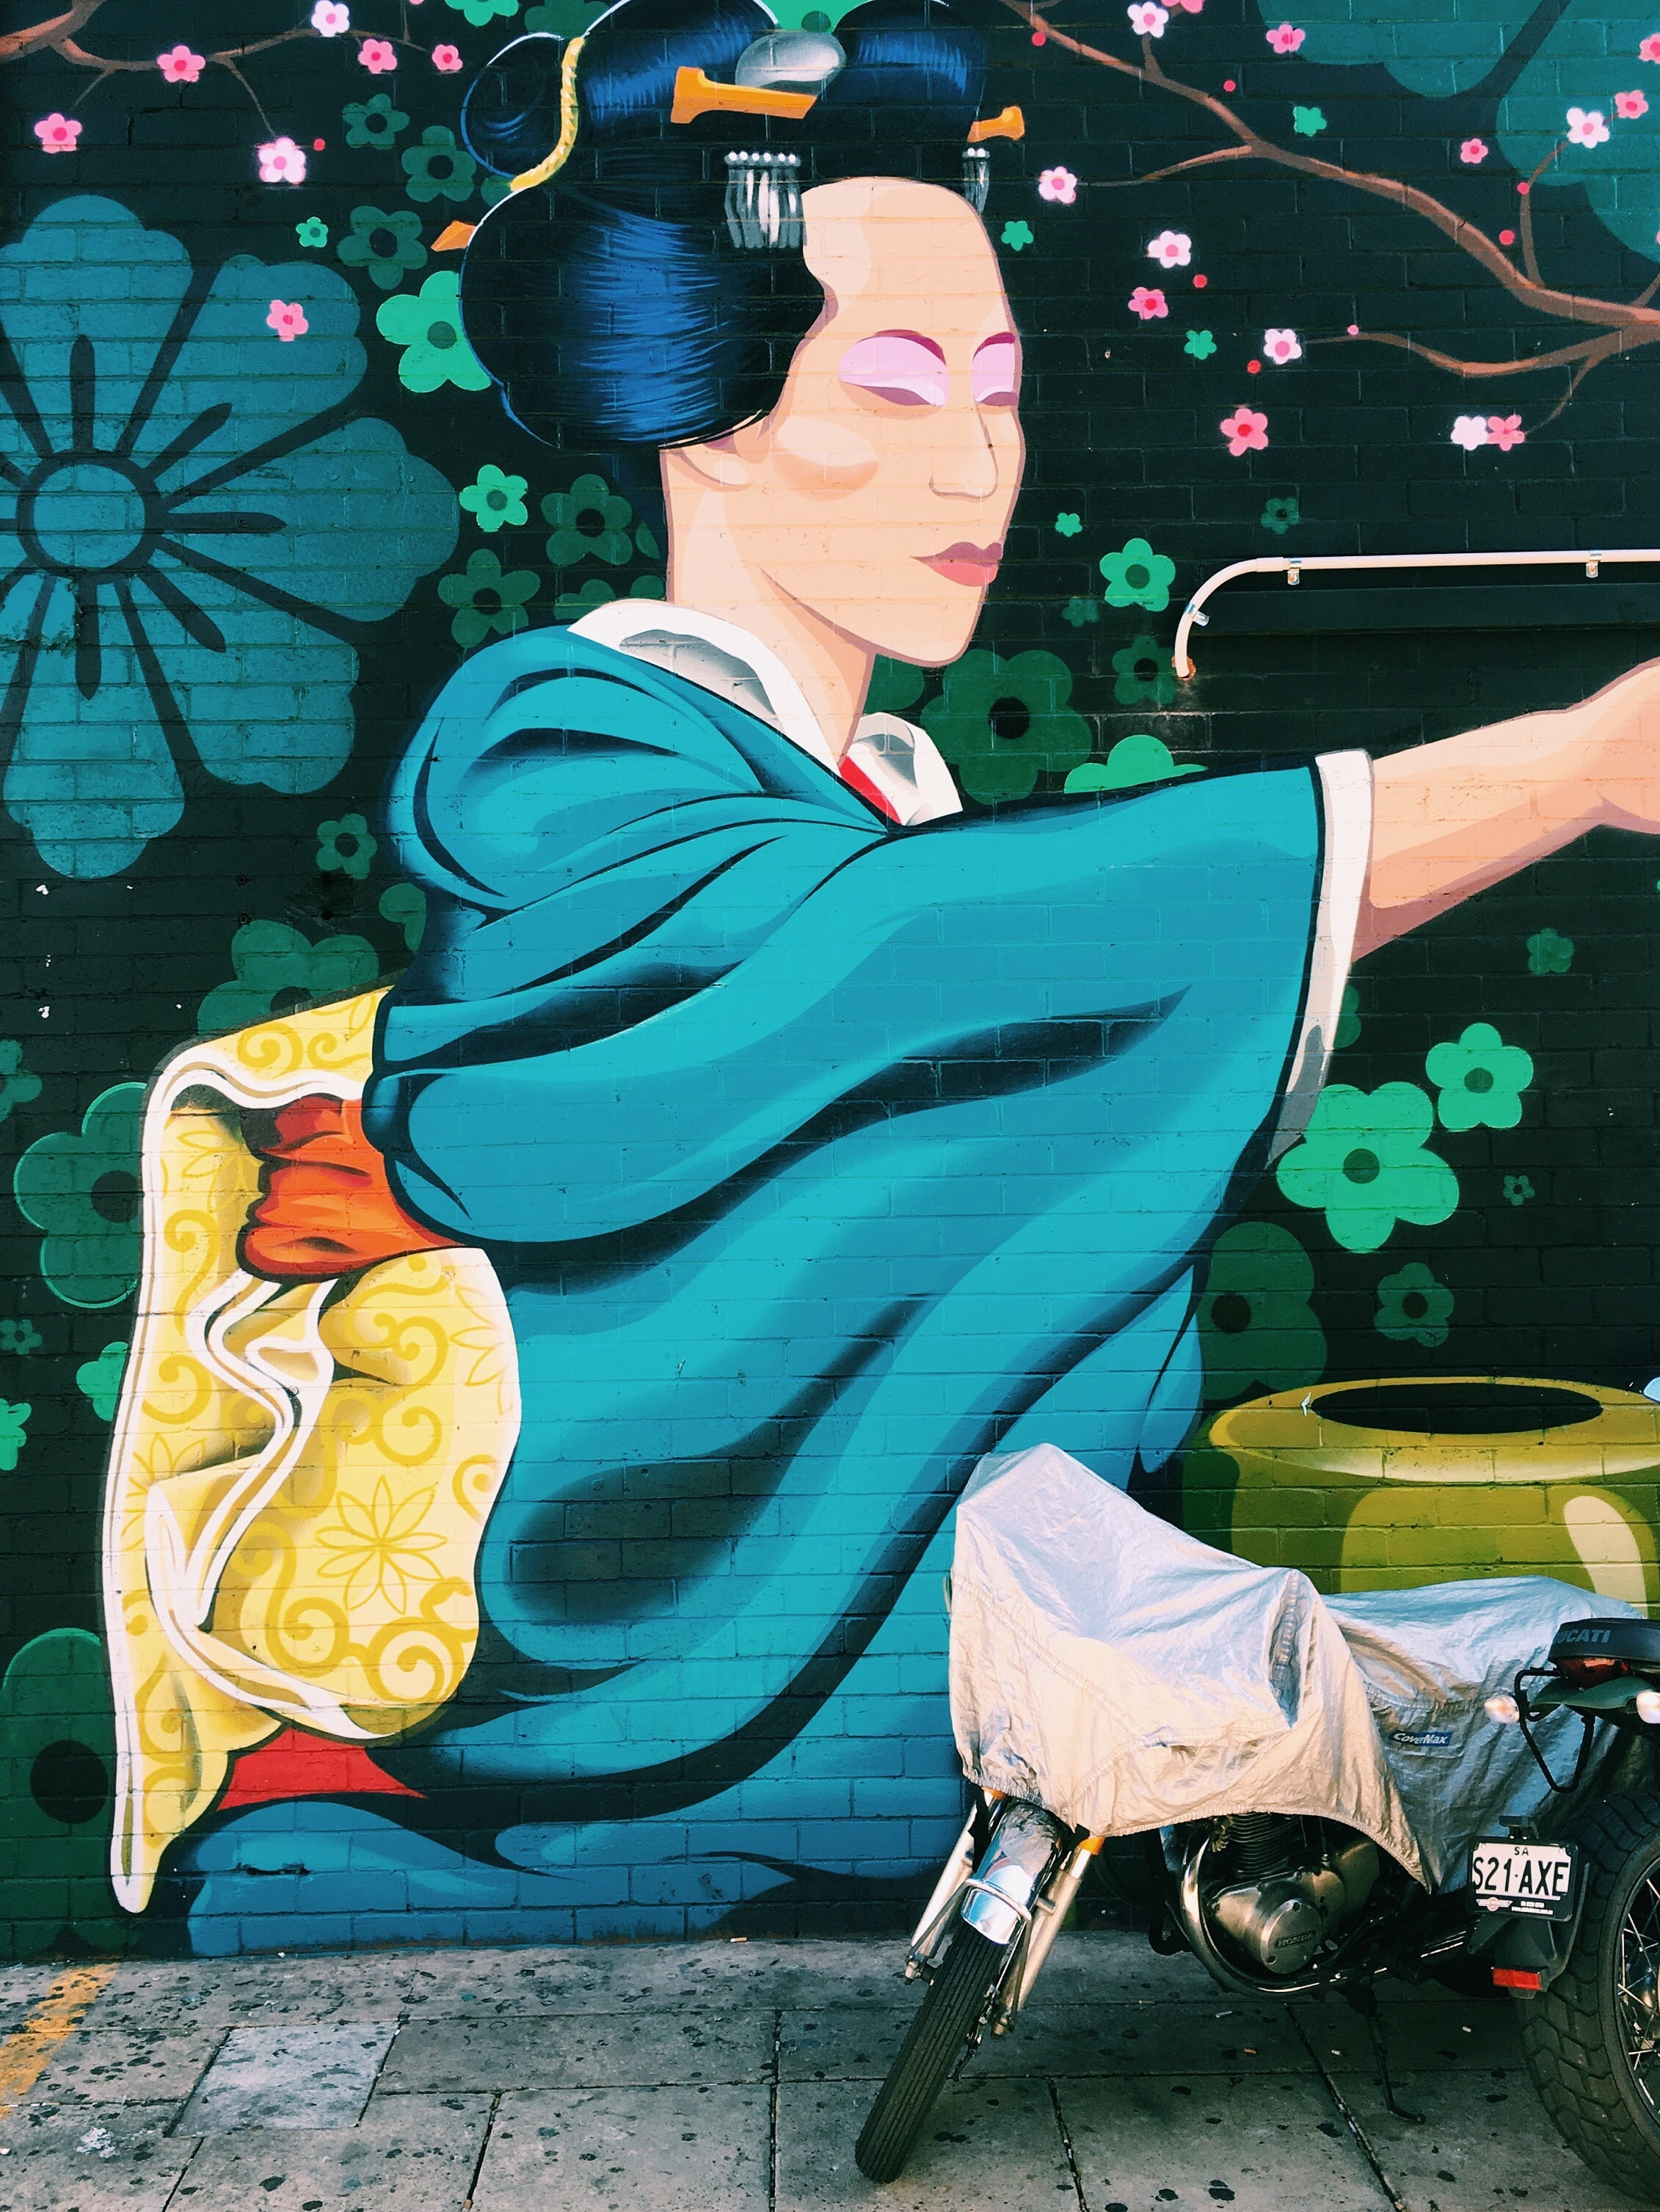 graffiti art of geisha